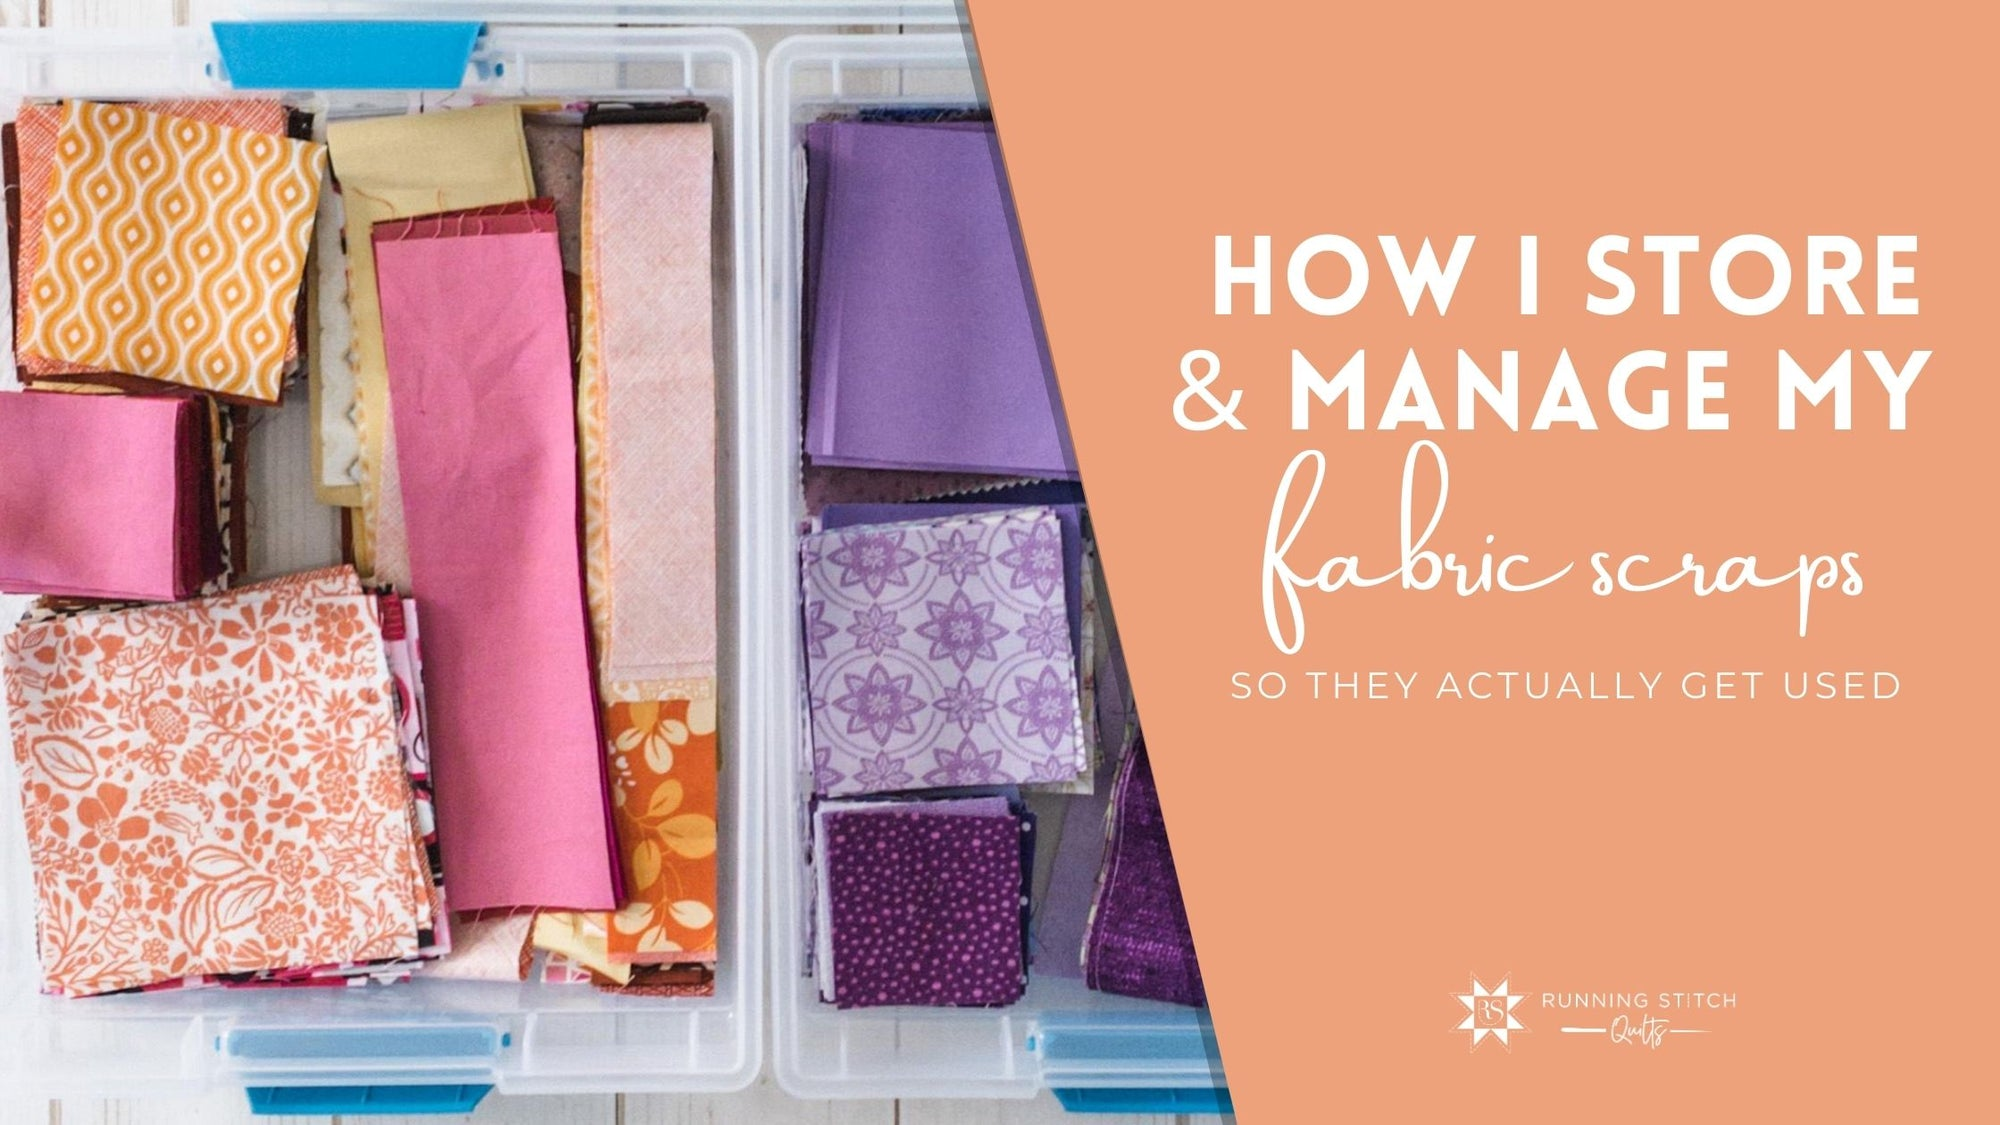 How I Store and Manage My Fabric Scraps